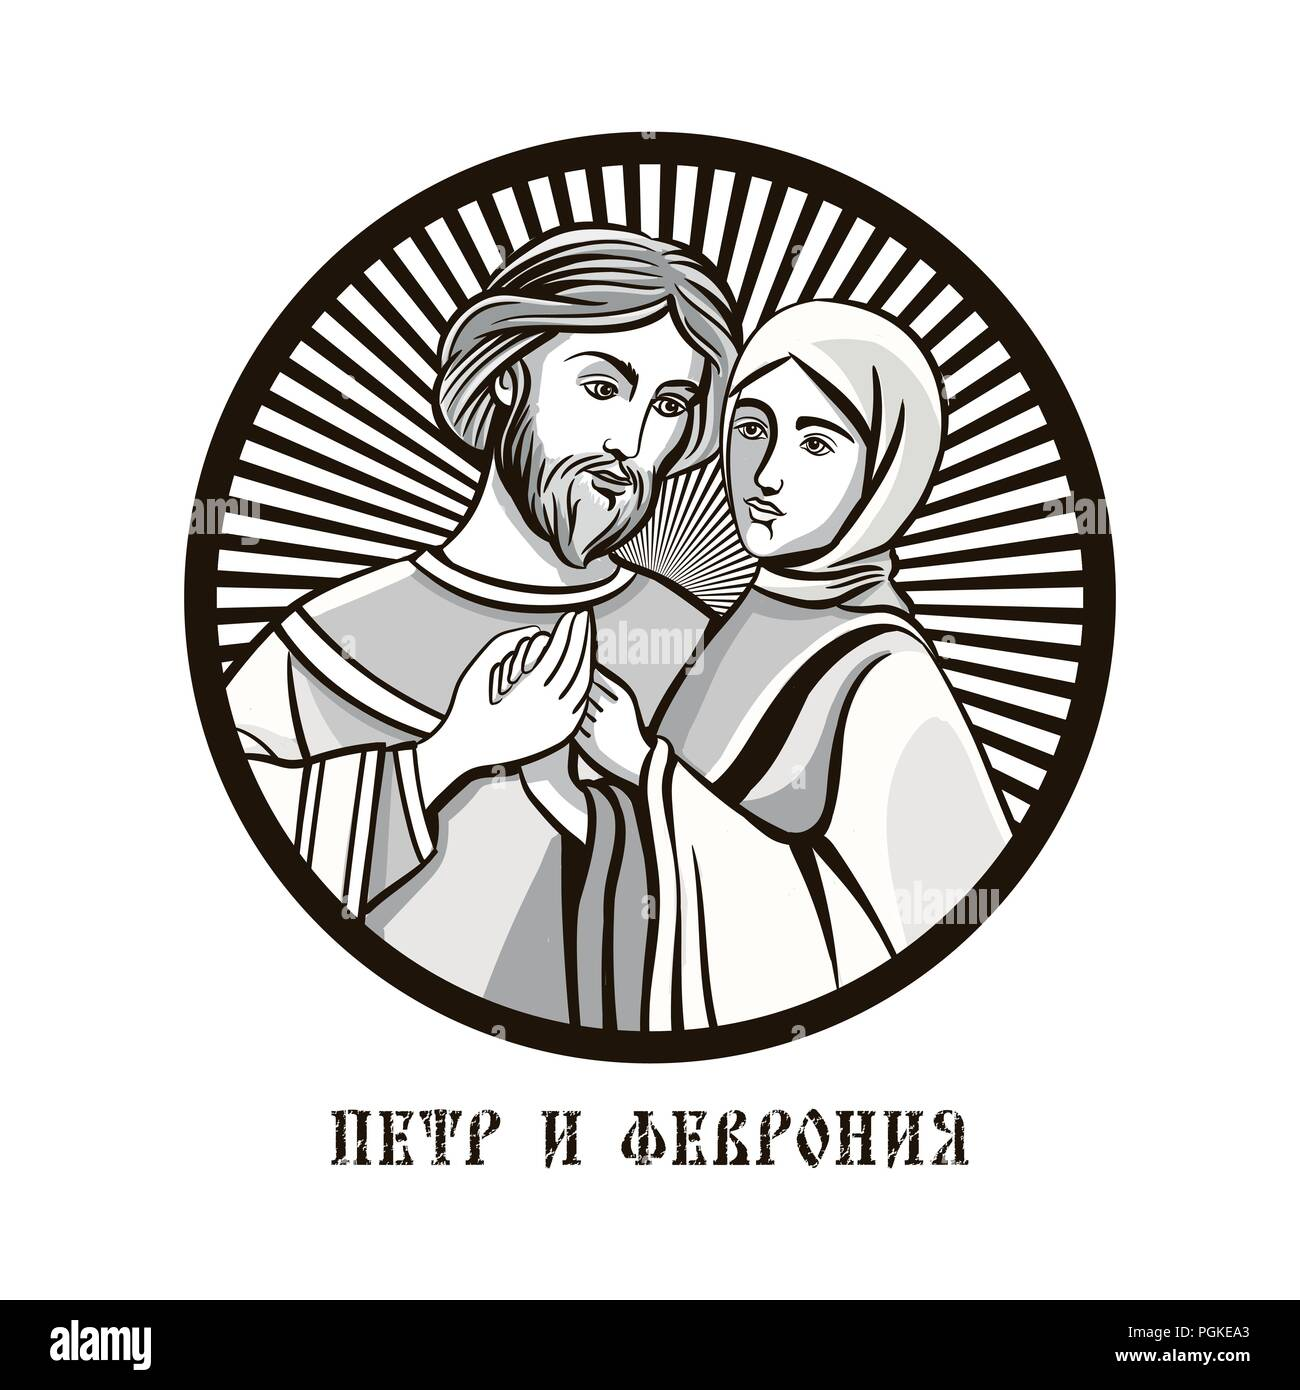 The role of the husband in the Orthodox family